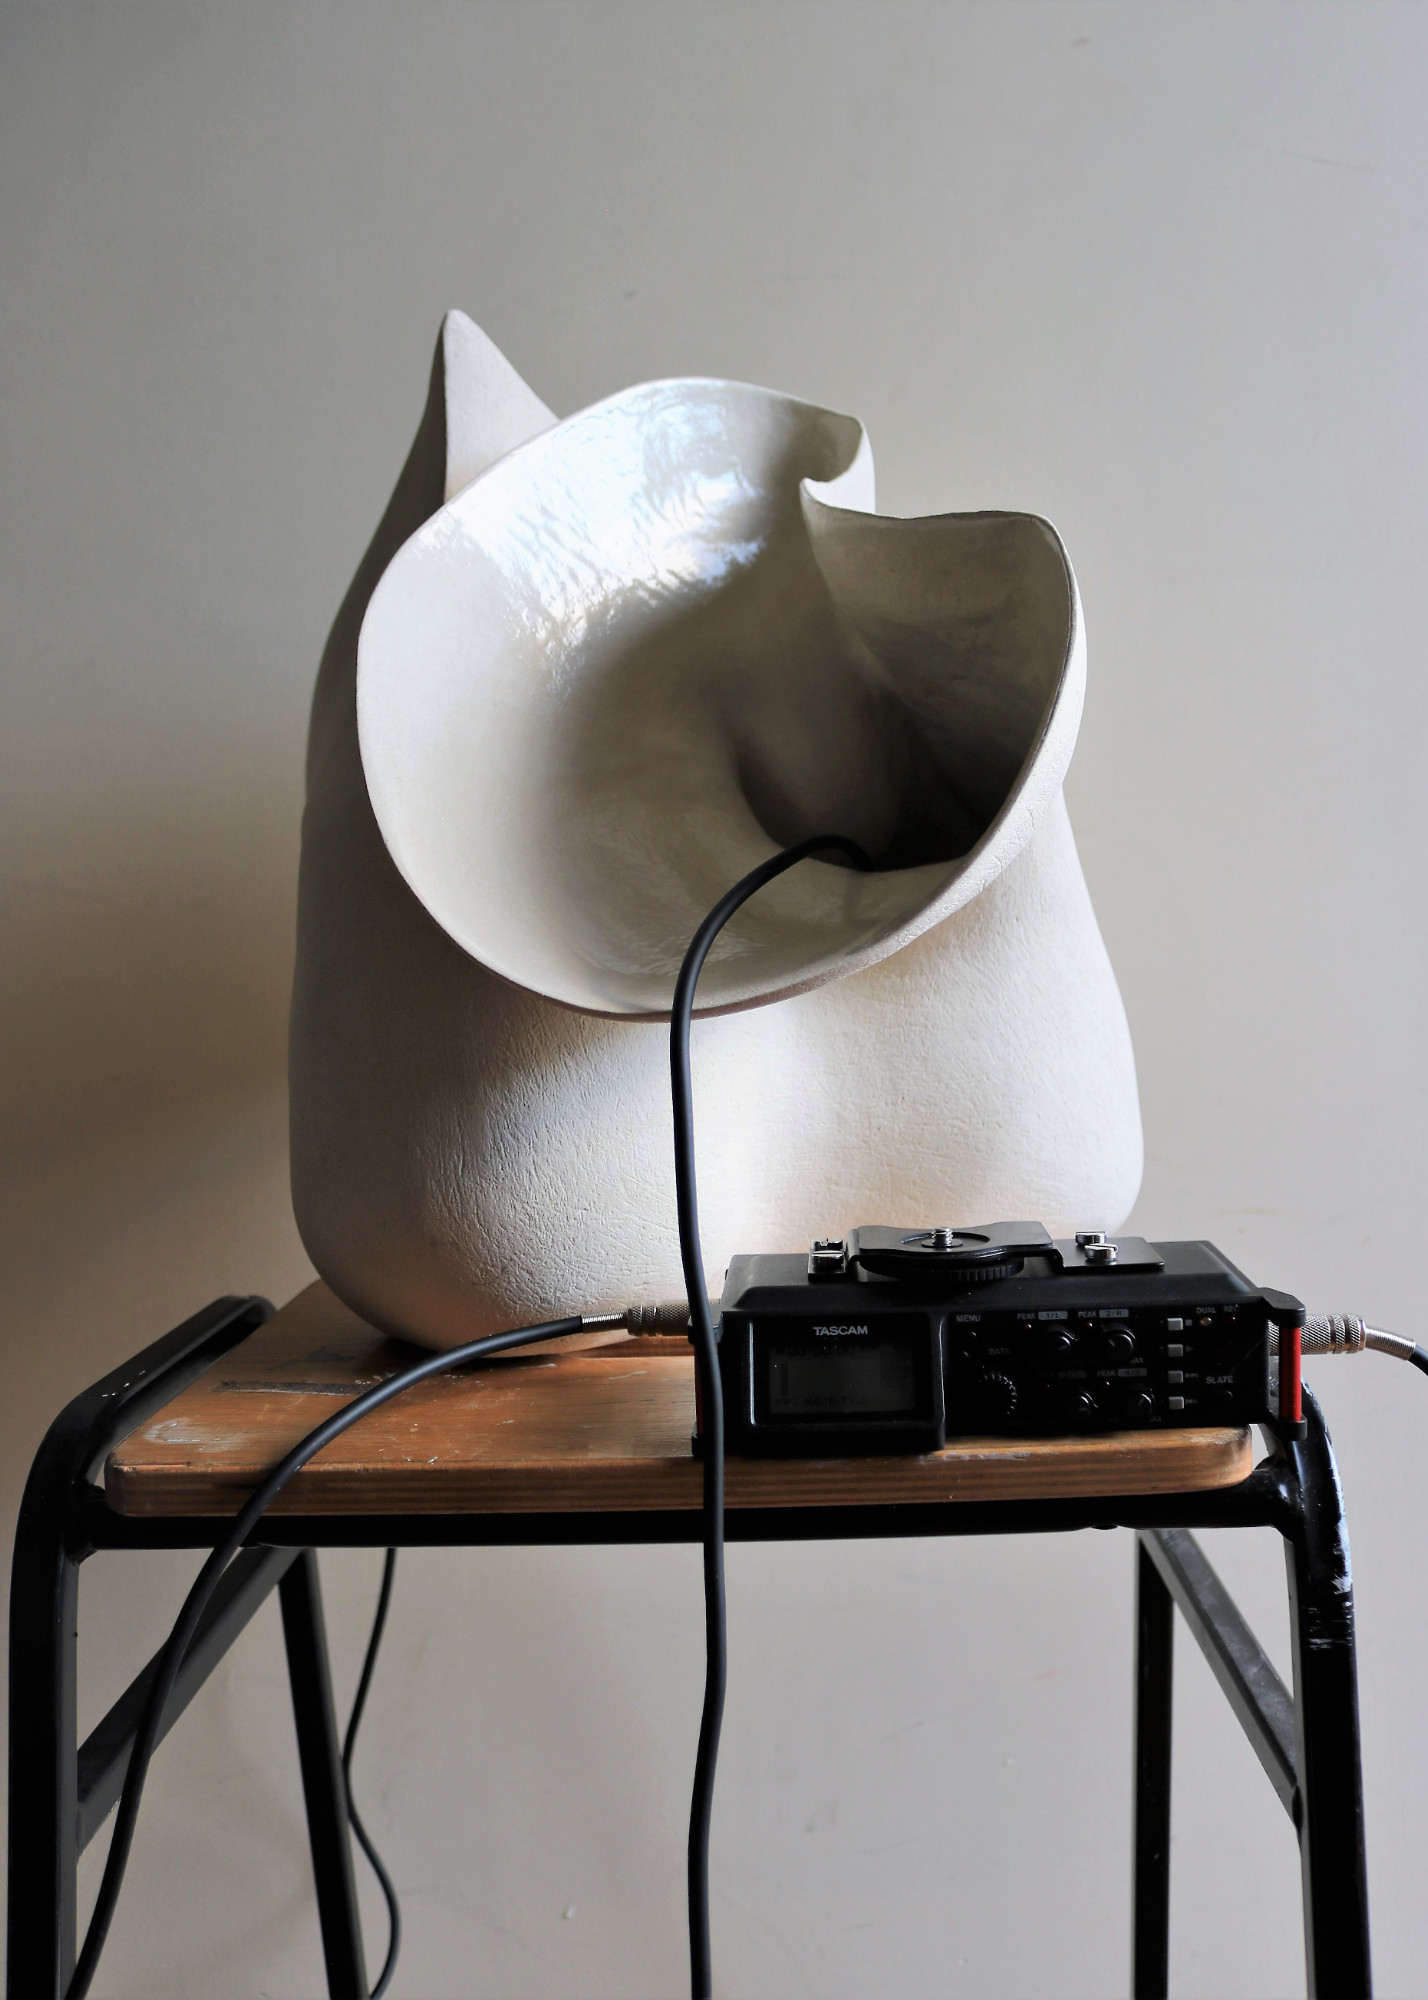 Objects listening II, 2020, Installation - Ceramic, water, lab stool, hydrophones, digital recorder, speaker, headphones - Sarah Strachan